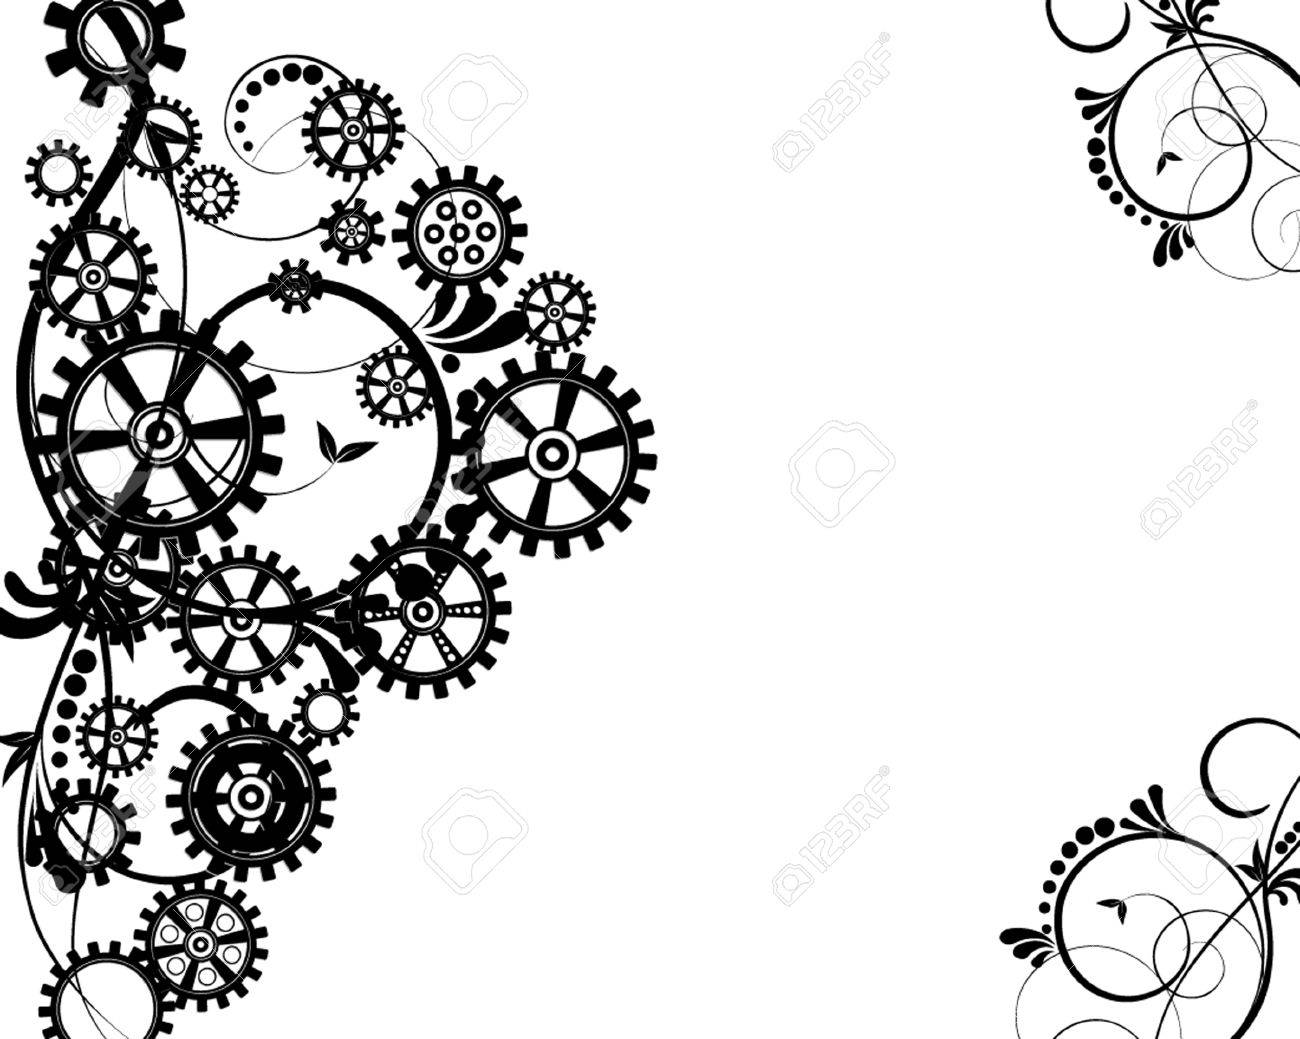 1300x1039 Abstract Mechanical Background With Floral Elements, Vector